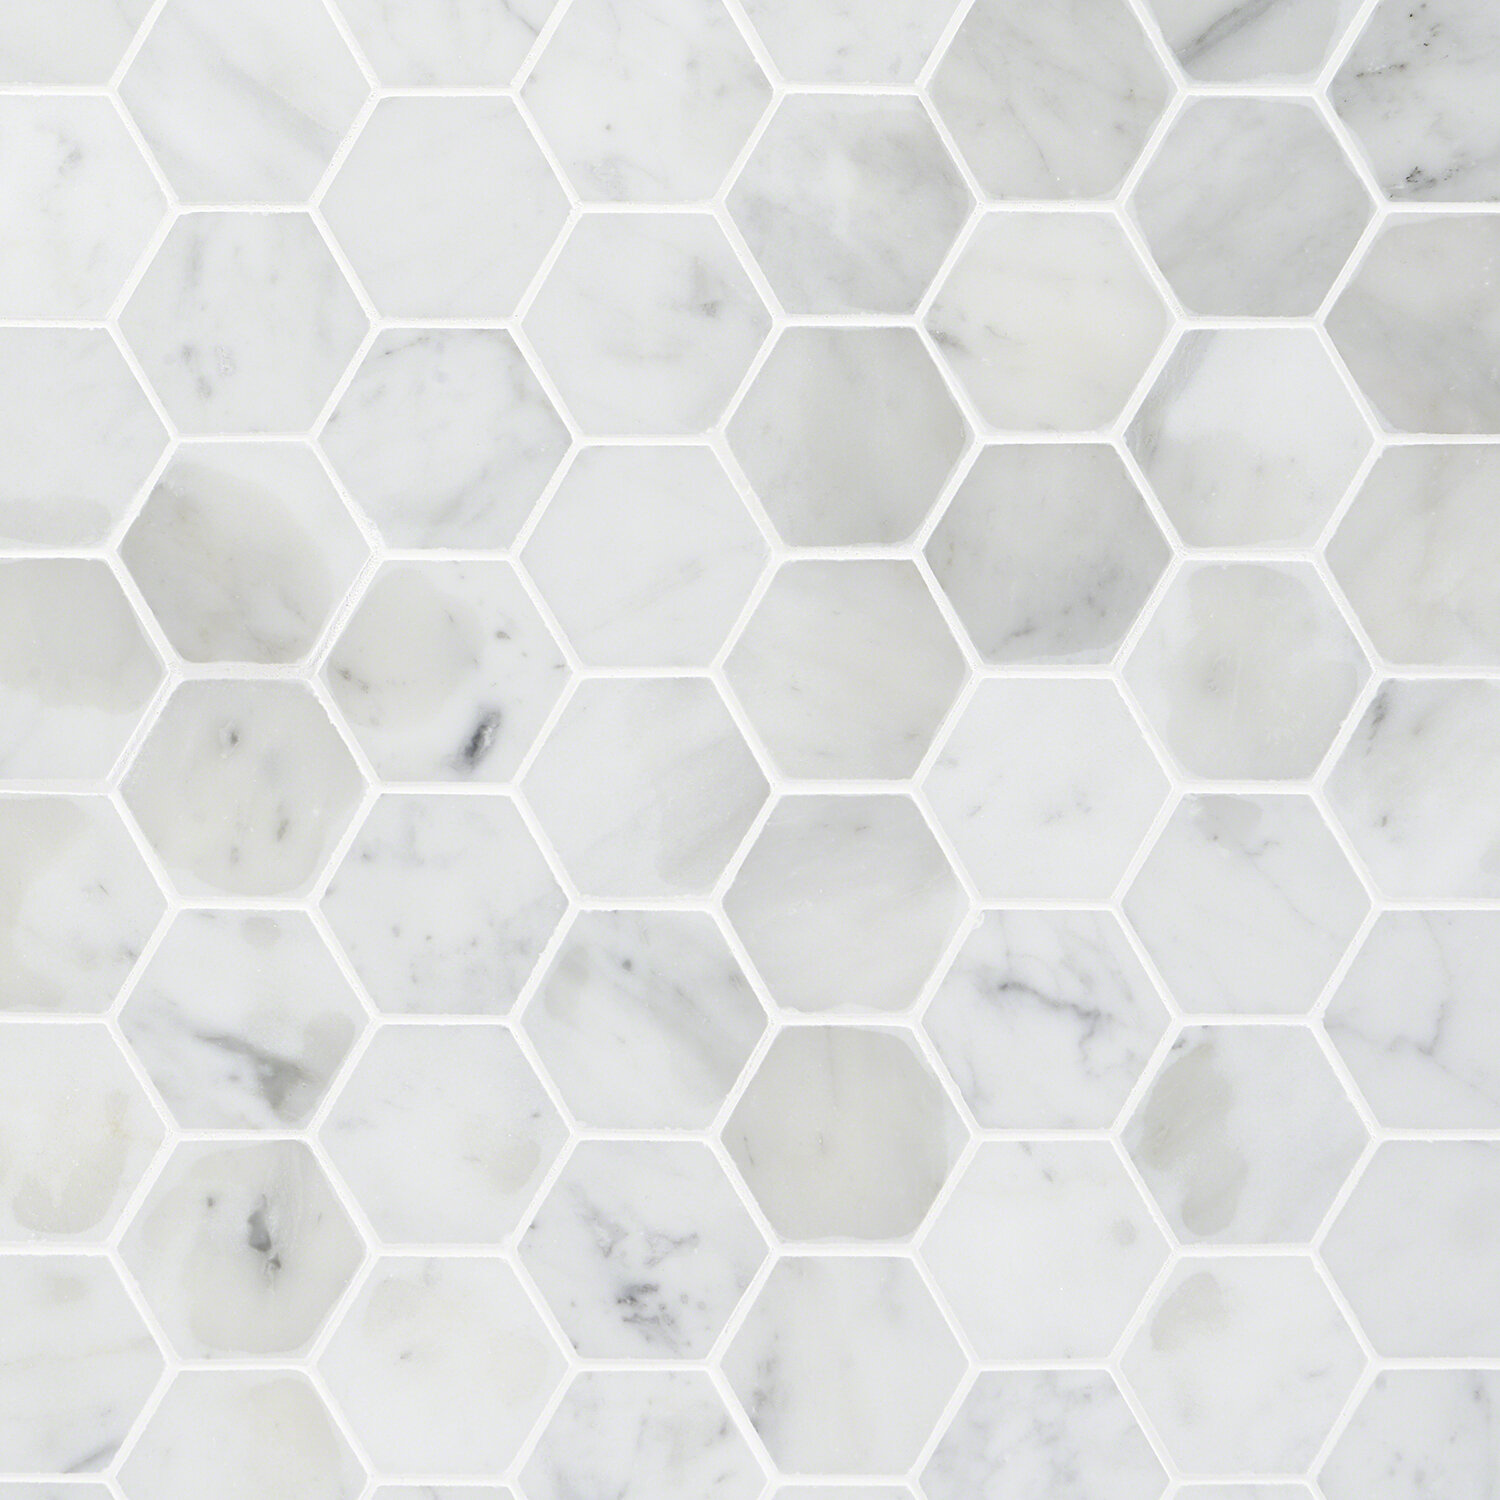 Ivy Hill Tile Hexagon 2 X 2 Marble Mosaic Tile Wayfair Ca